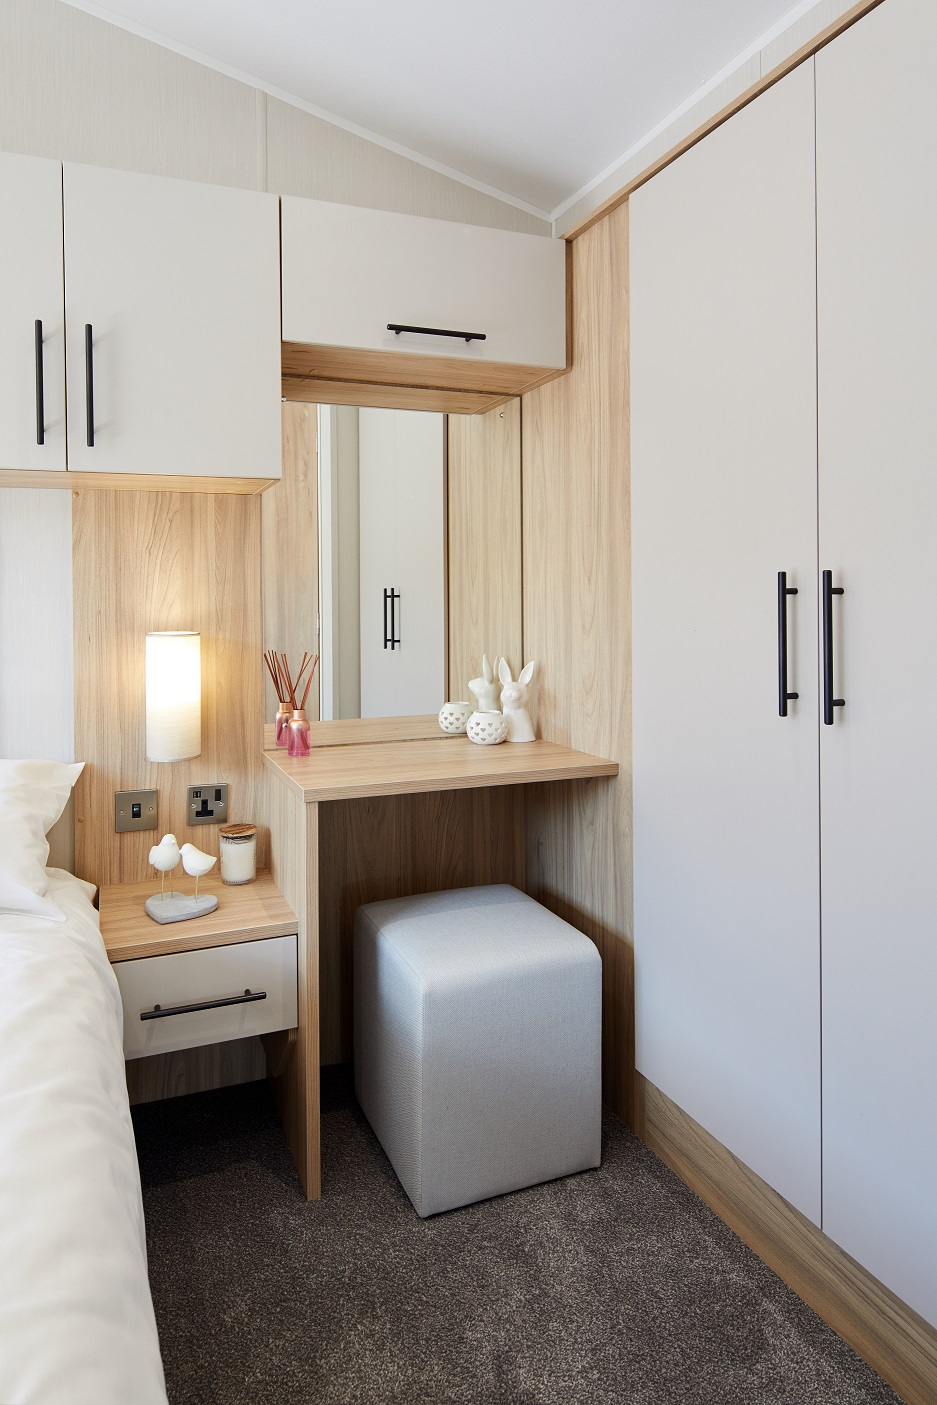 Willerby Manor: New Static Caravans and Holiday Homes for Sale, Langley Moor, Durham Image 3